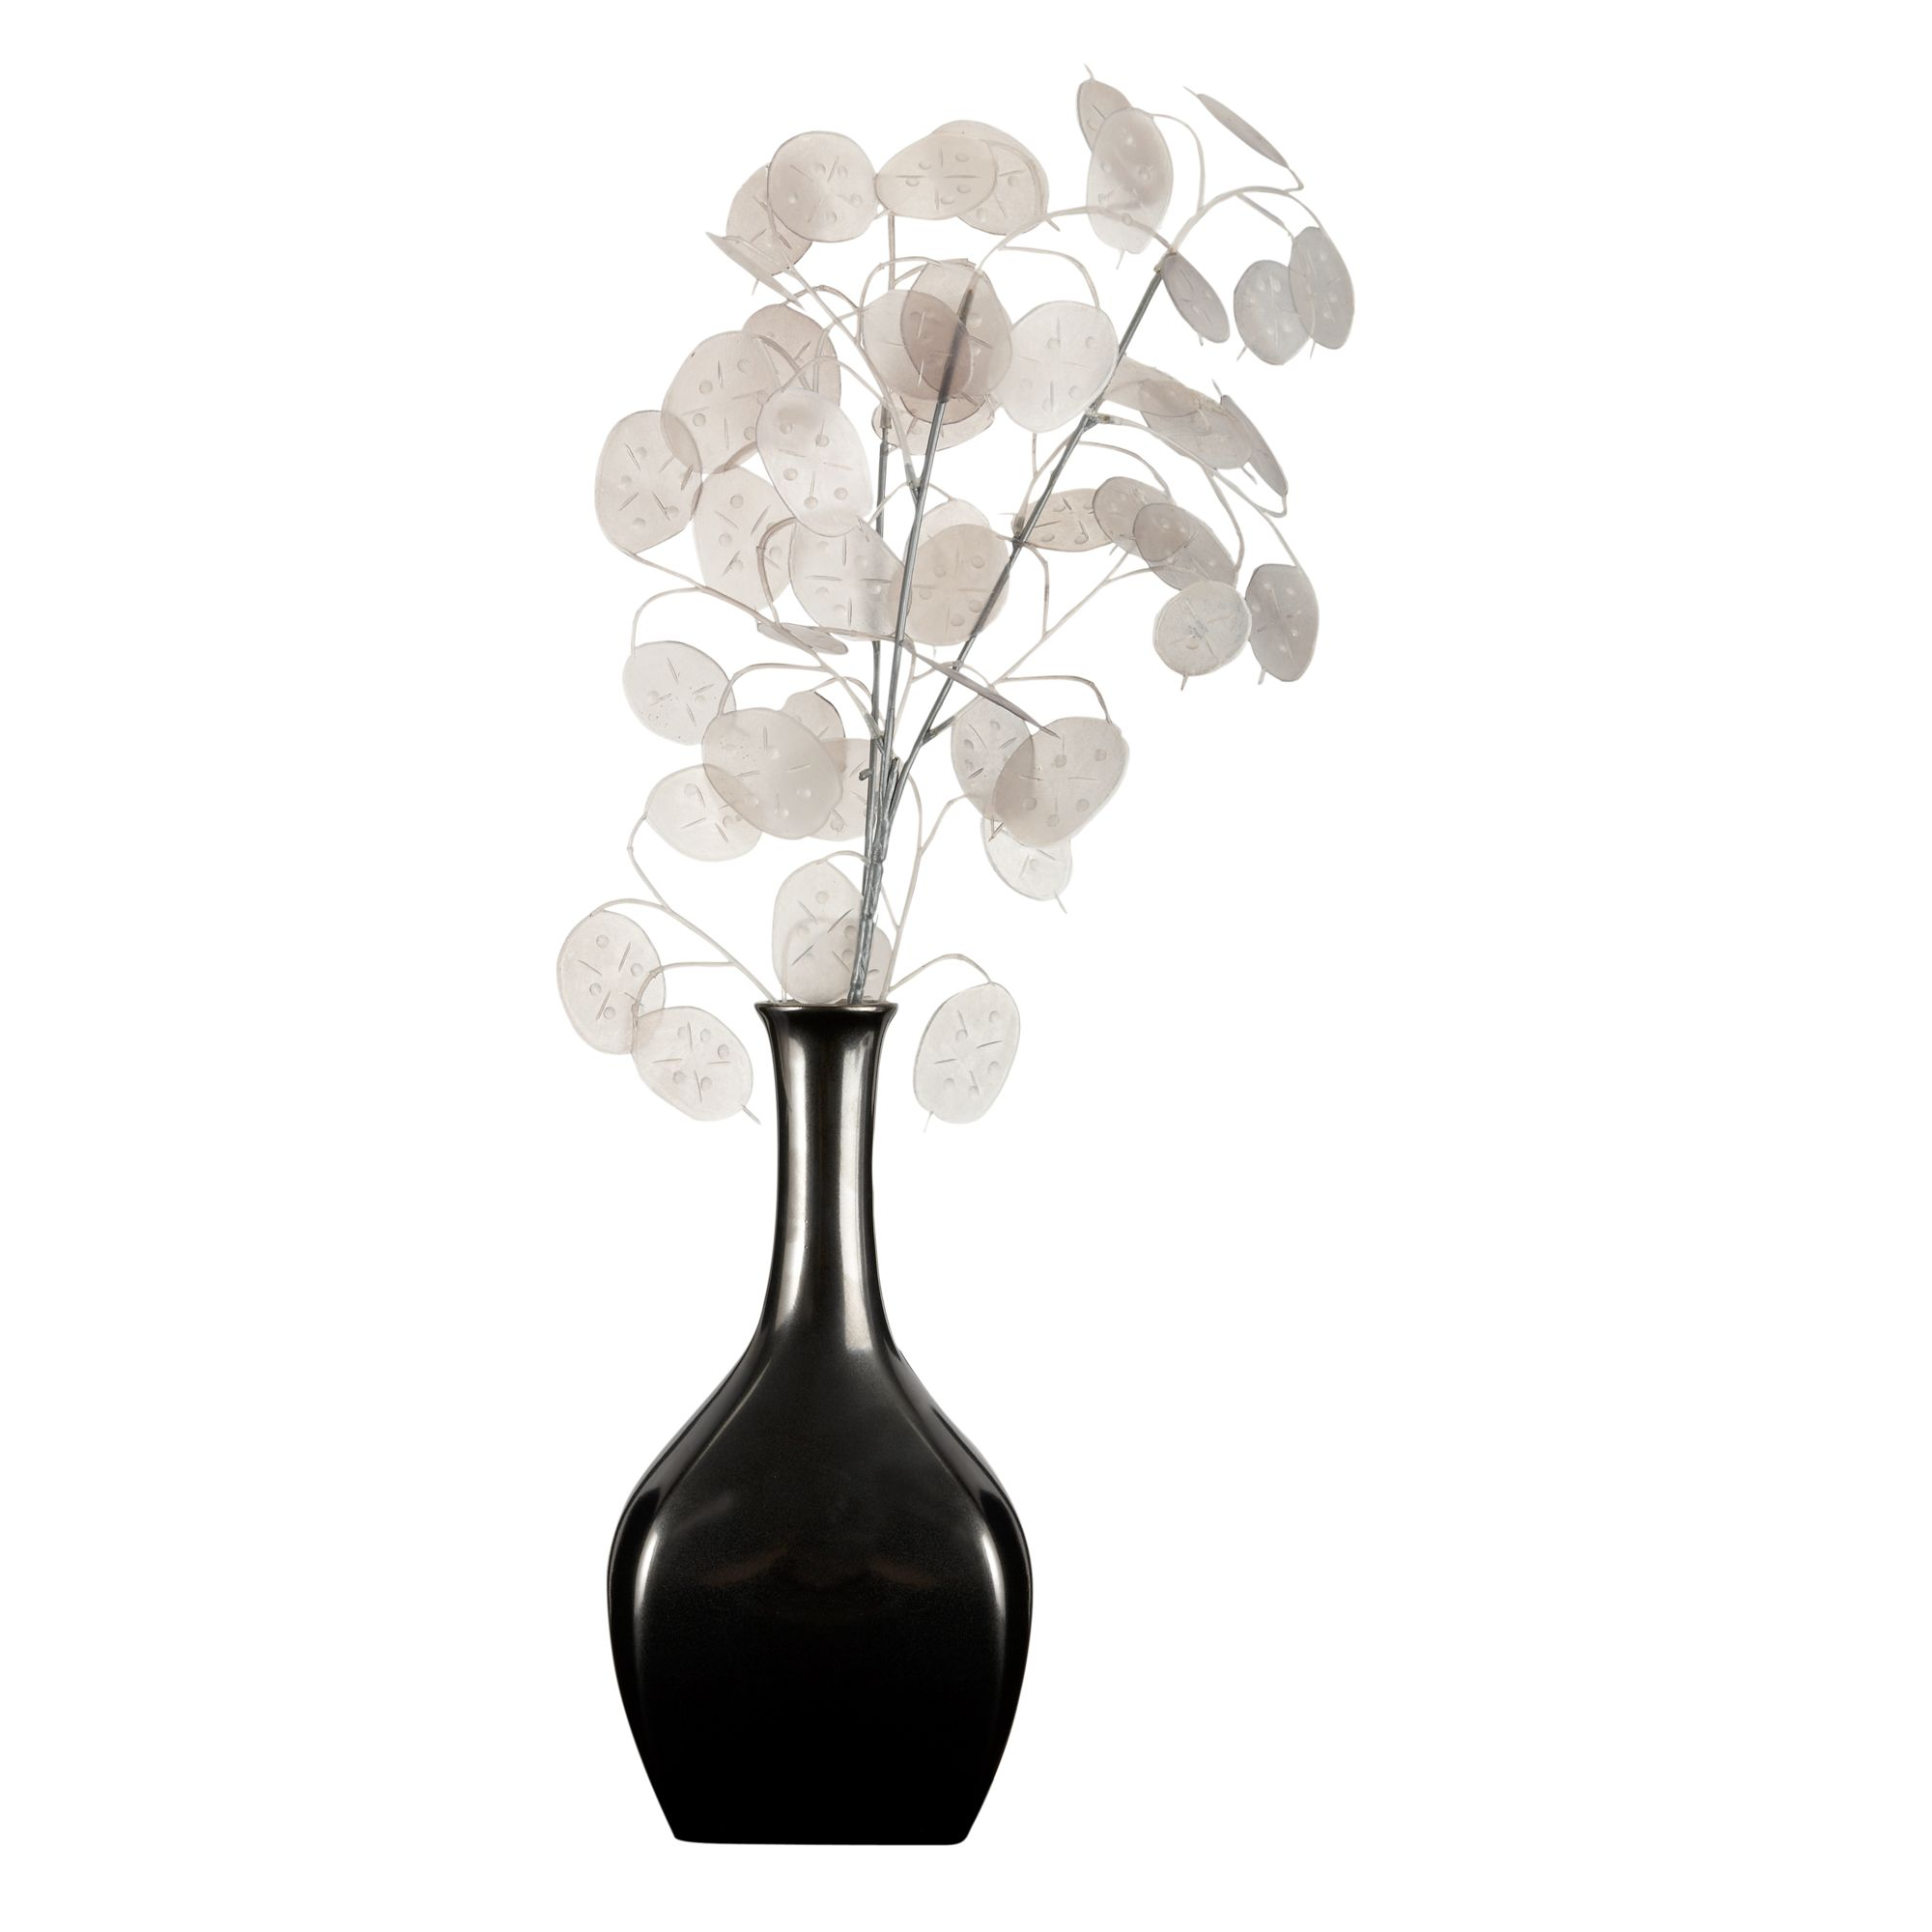 Honesty in pewter vase